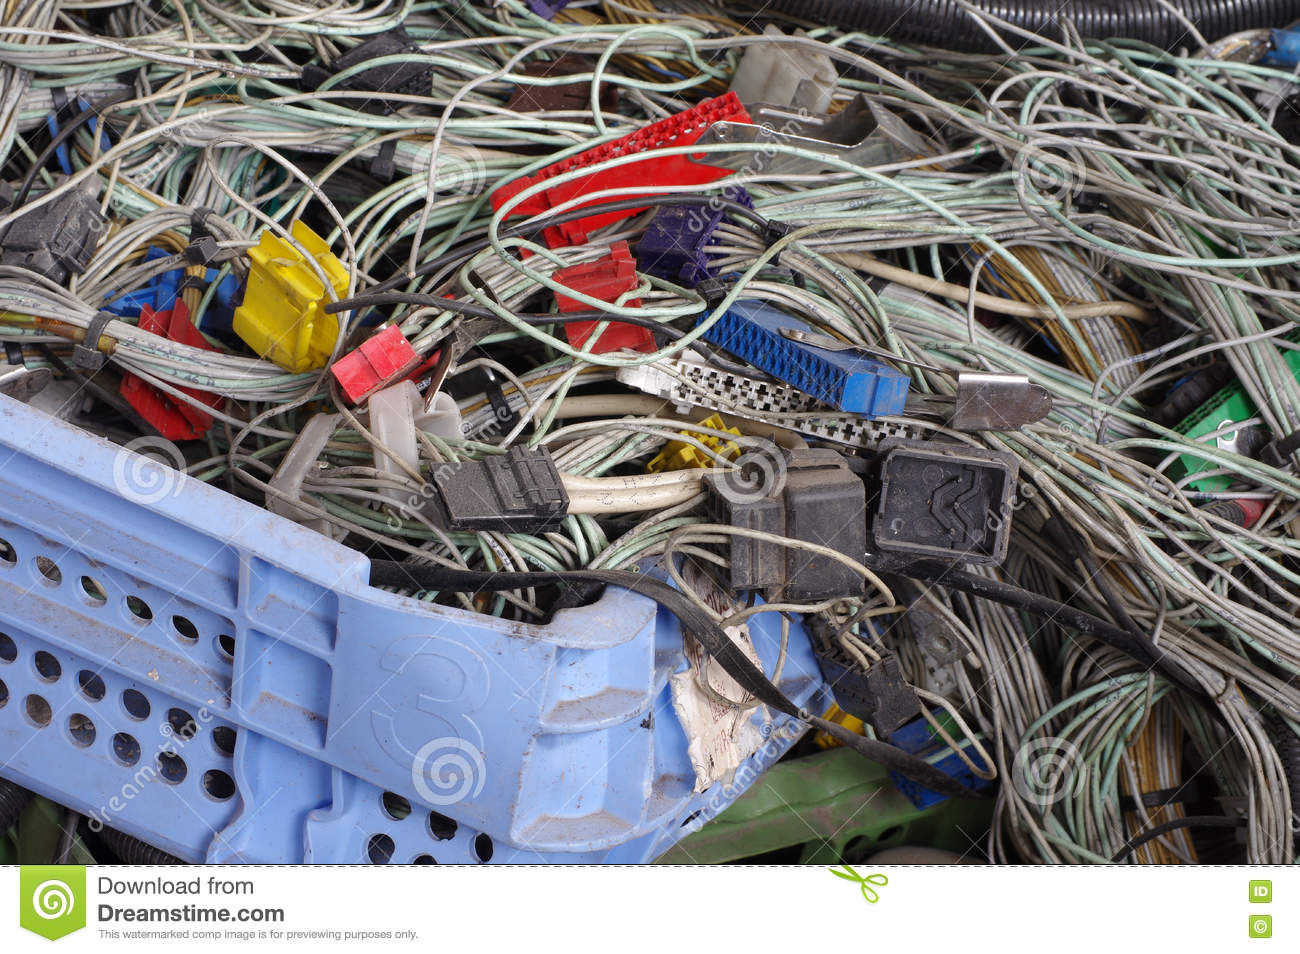 Recycling Car Electric Wiring Set Stock Photo - Image of engine ...